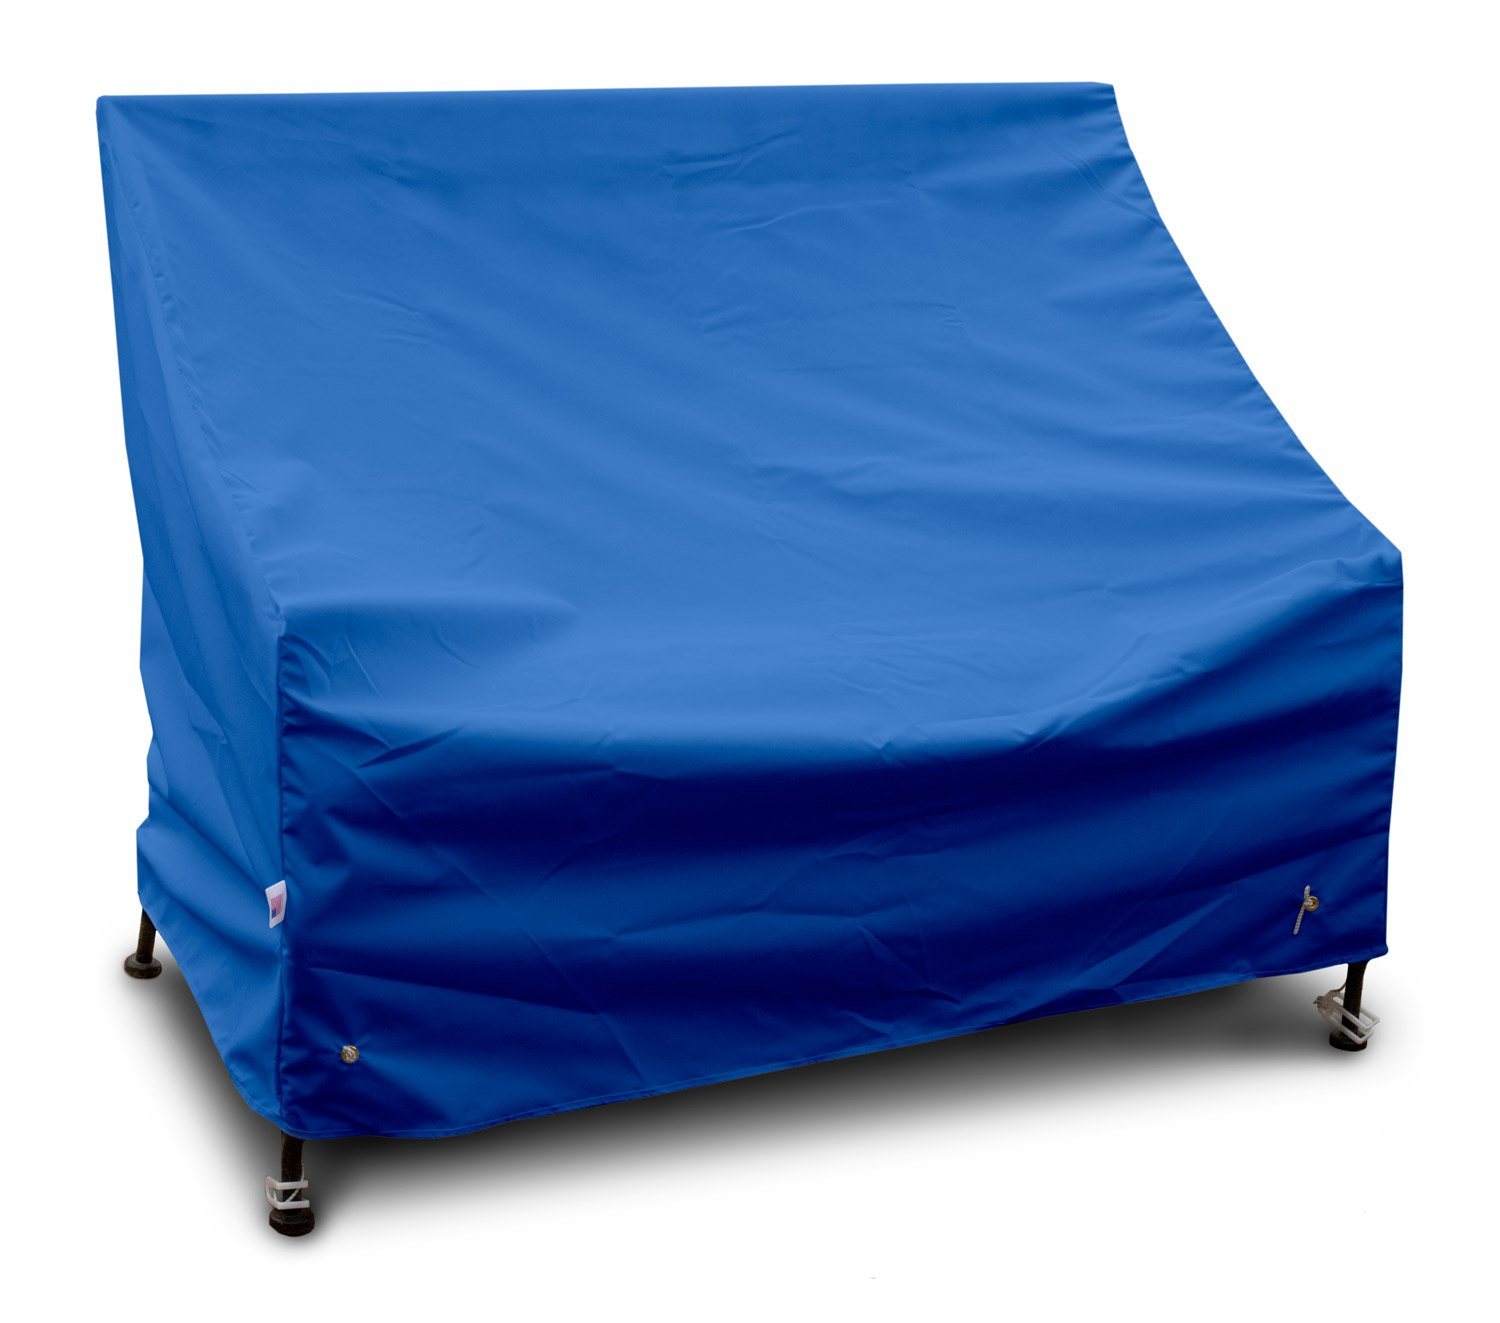 KoverRoos Weathermax 04203 5-Feet Bench/Glider Cover, 63-Inch Width by 28-Inch Diameter by 37-Inch Height, Pacific Blue